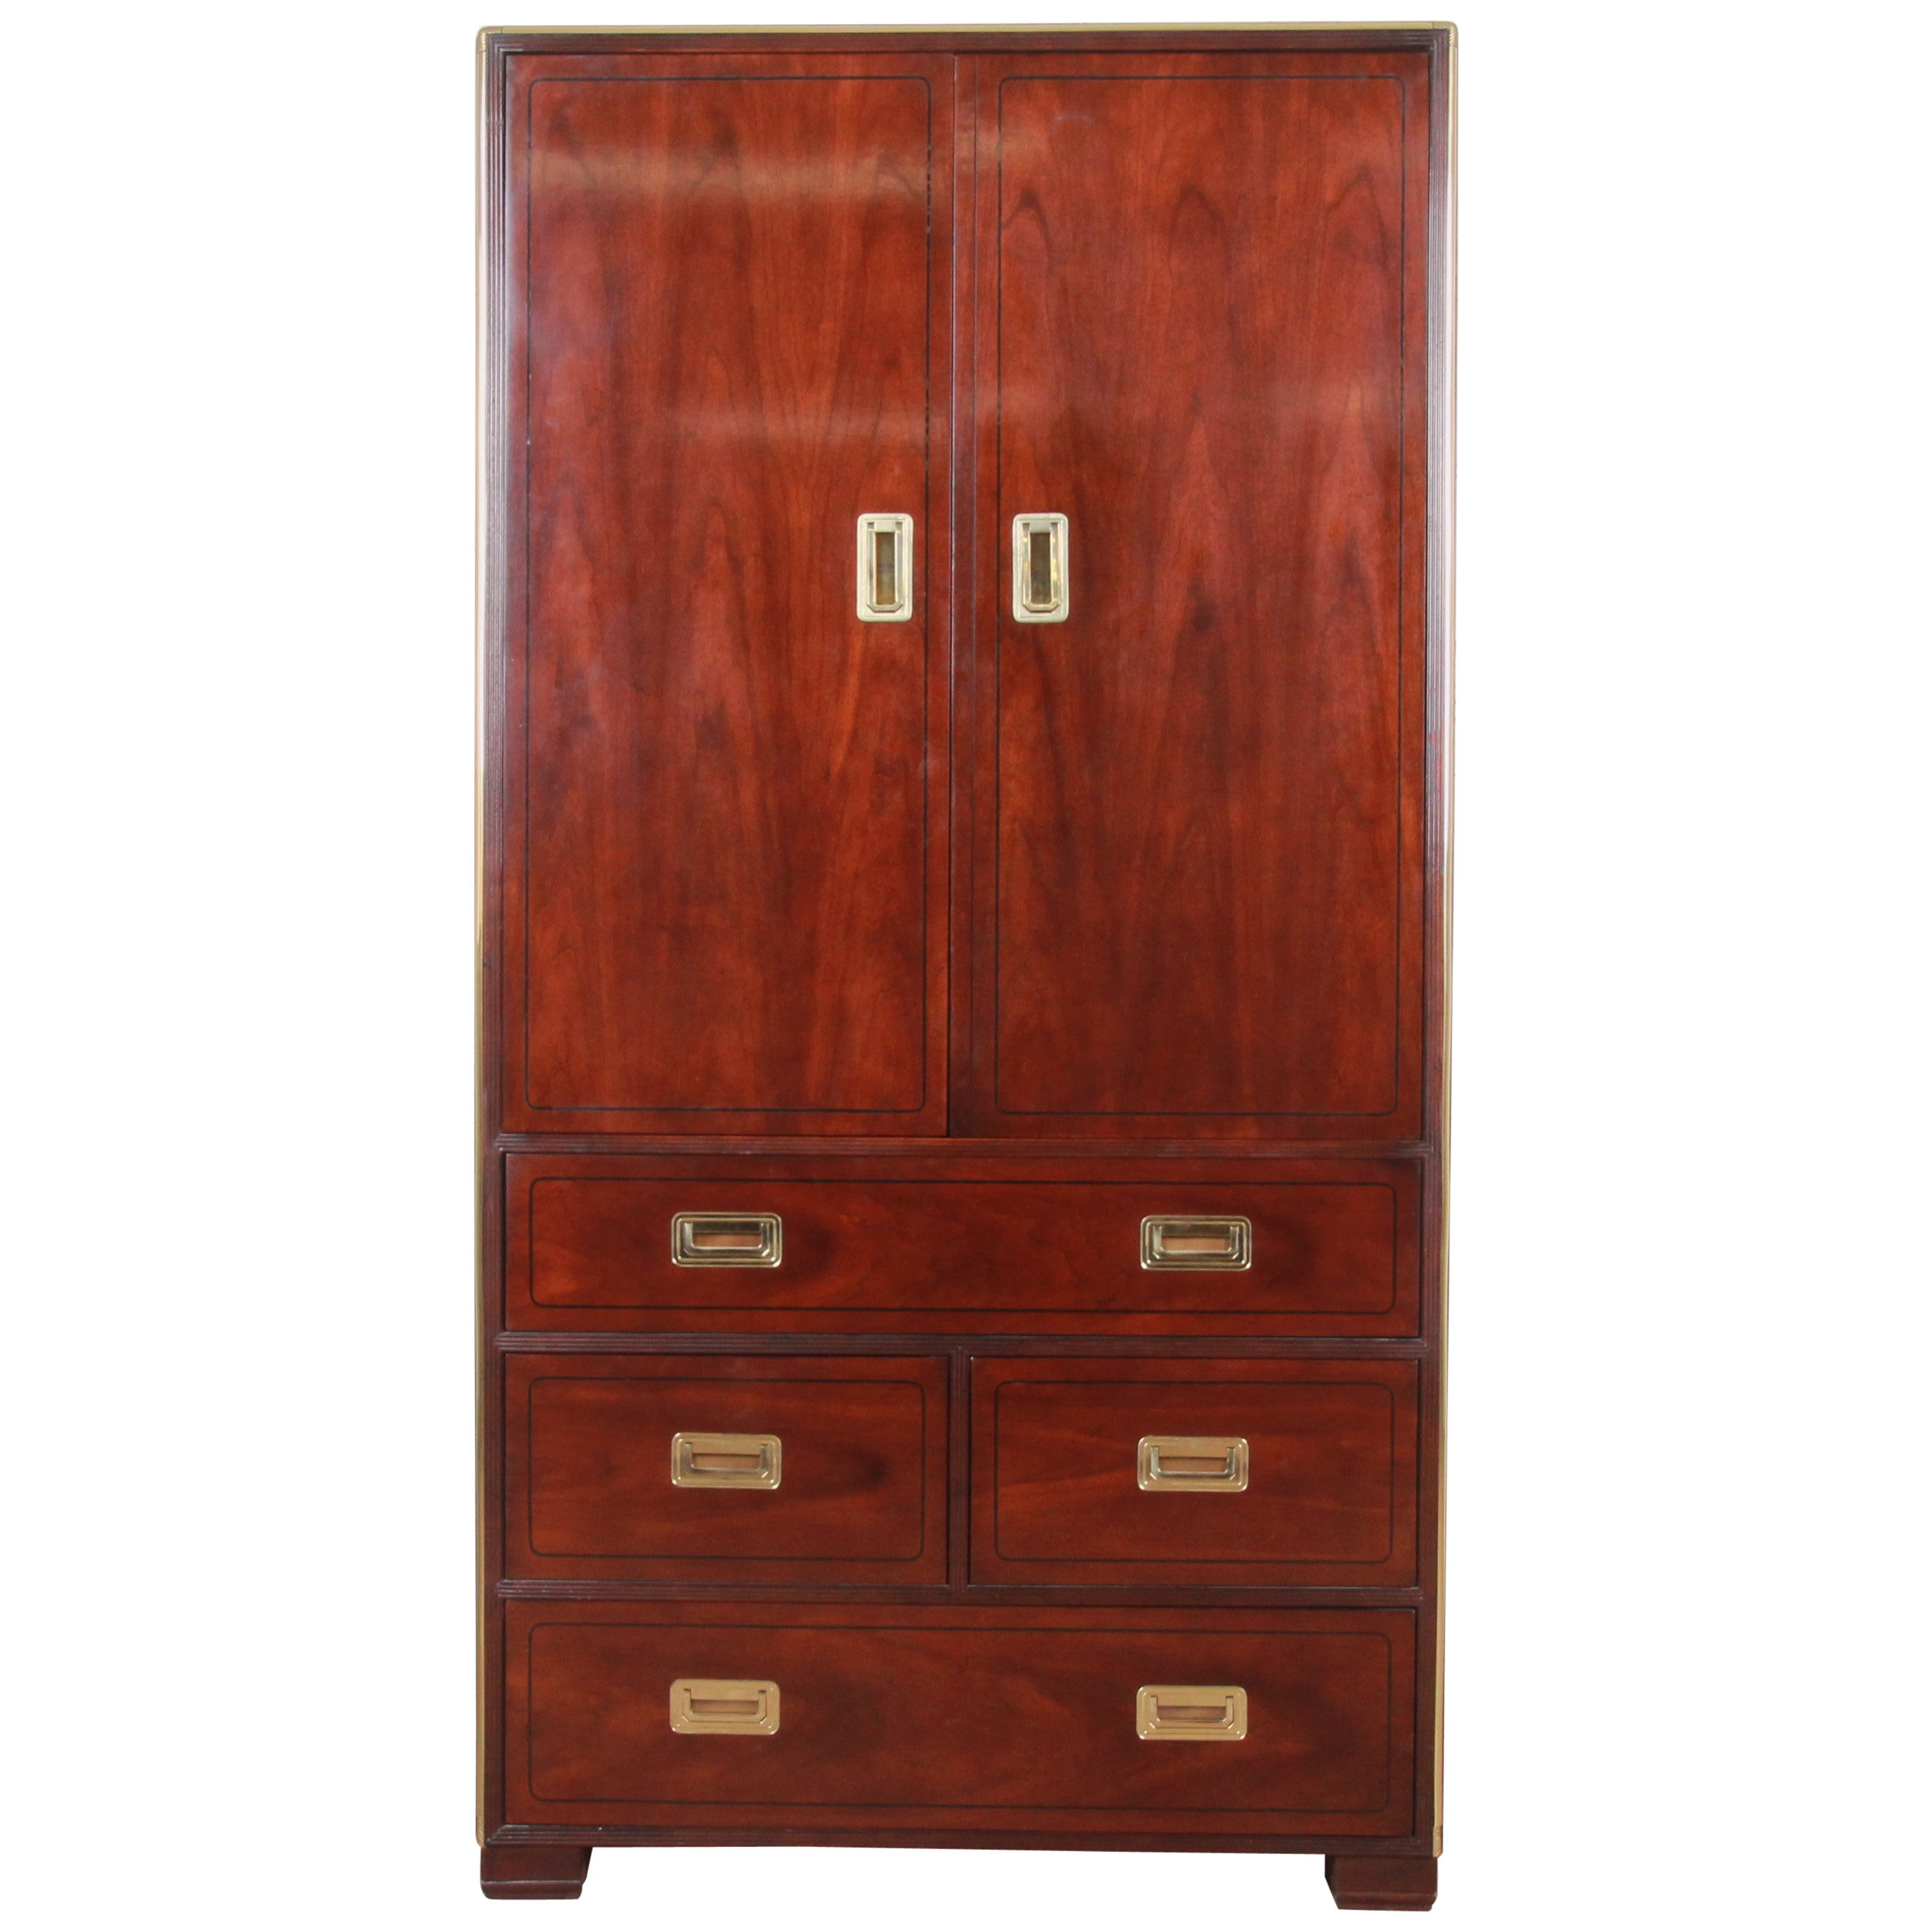 Baker Furniture Hollywood Regency Campaign Cherry and Brass Armoire Dresser